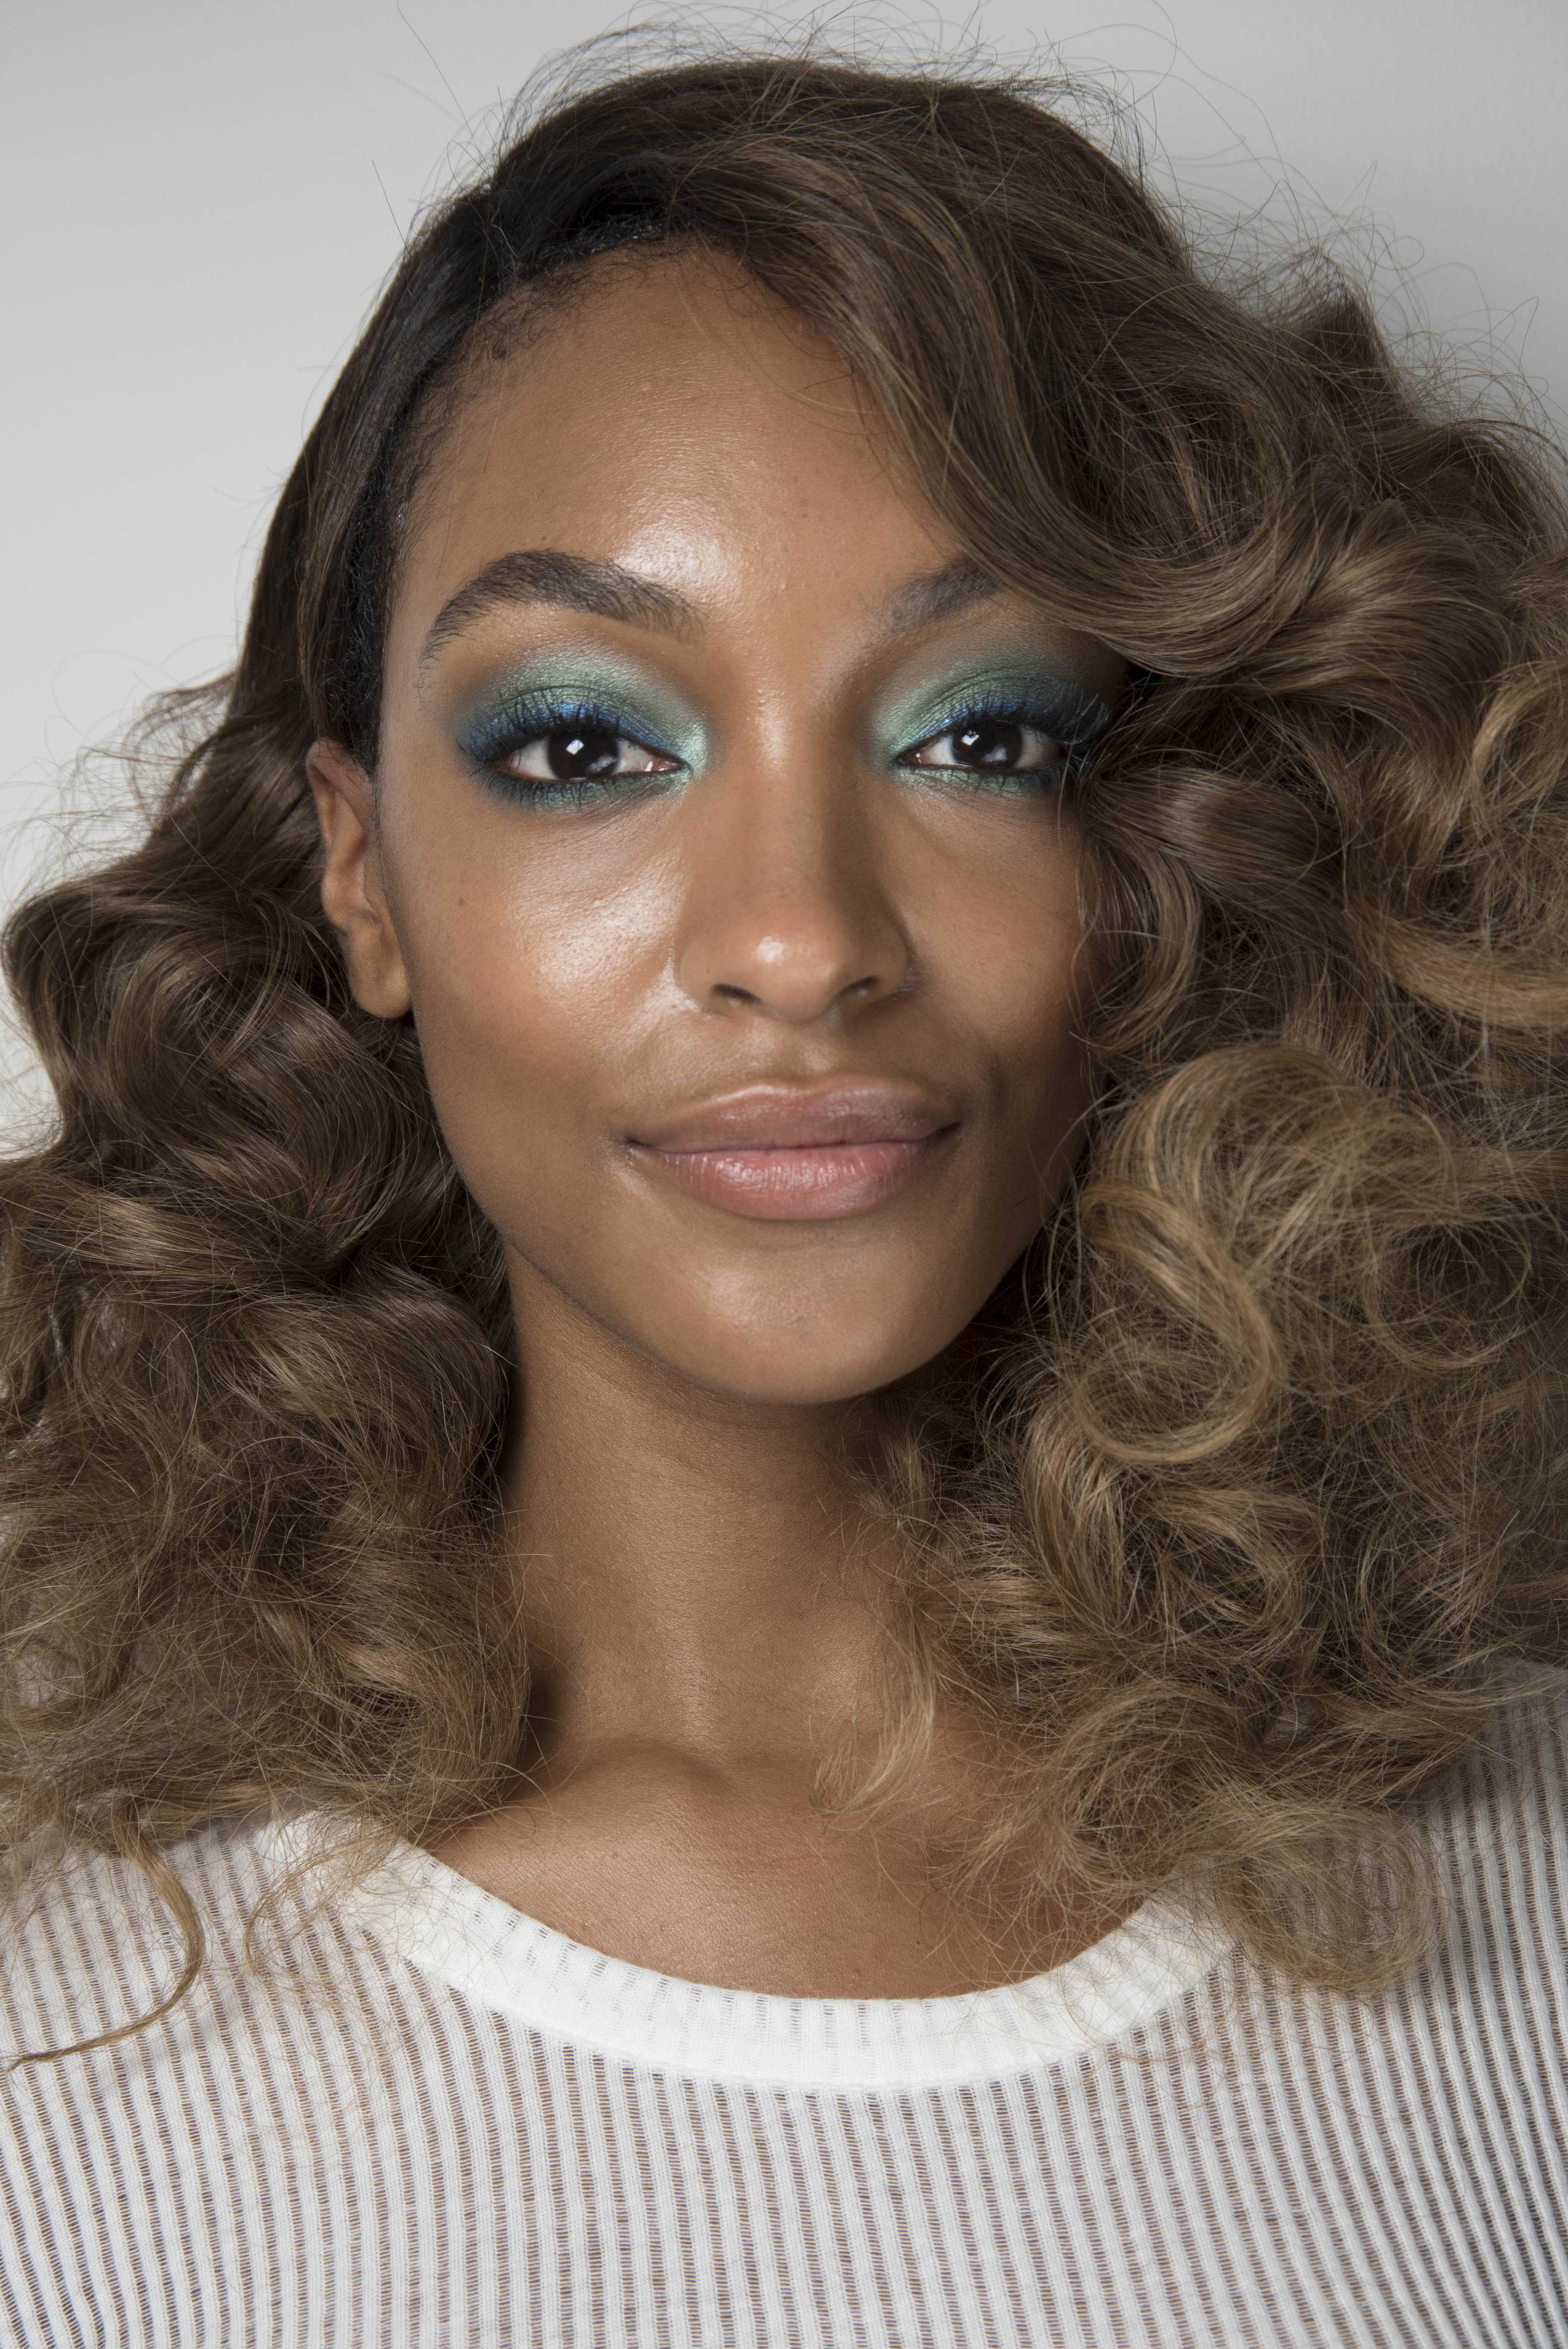 Ombre highlights: All Things Hair - IMAGE - dark skin tones